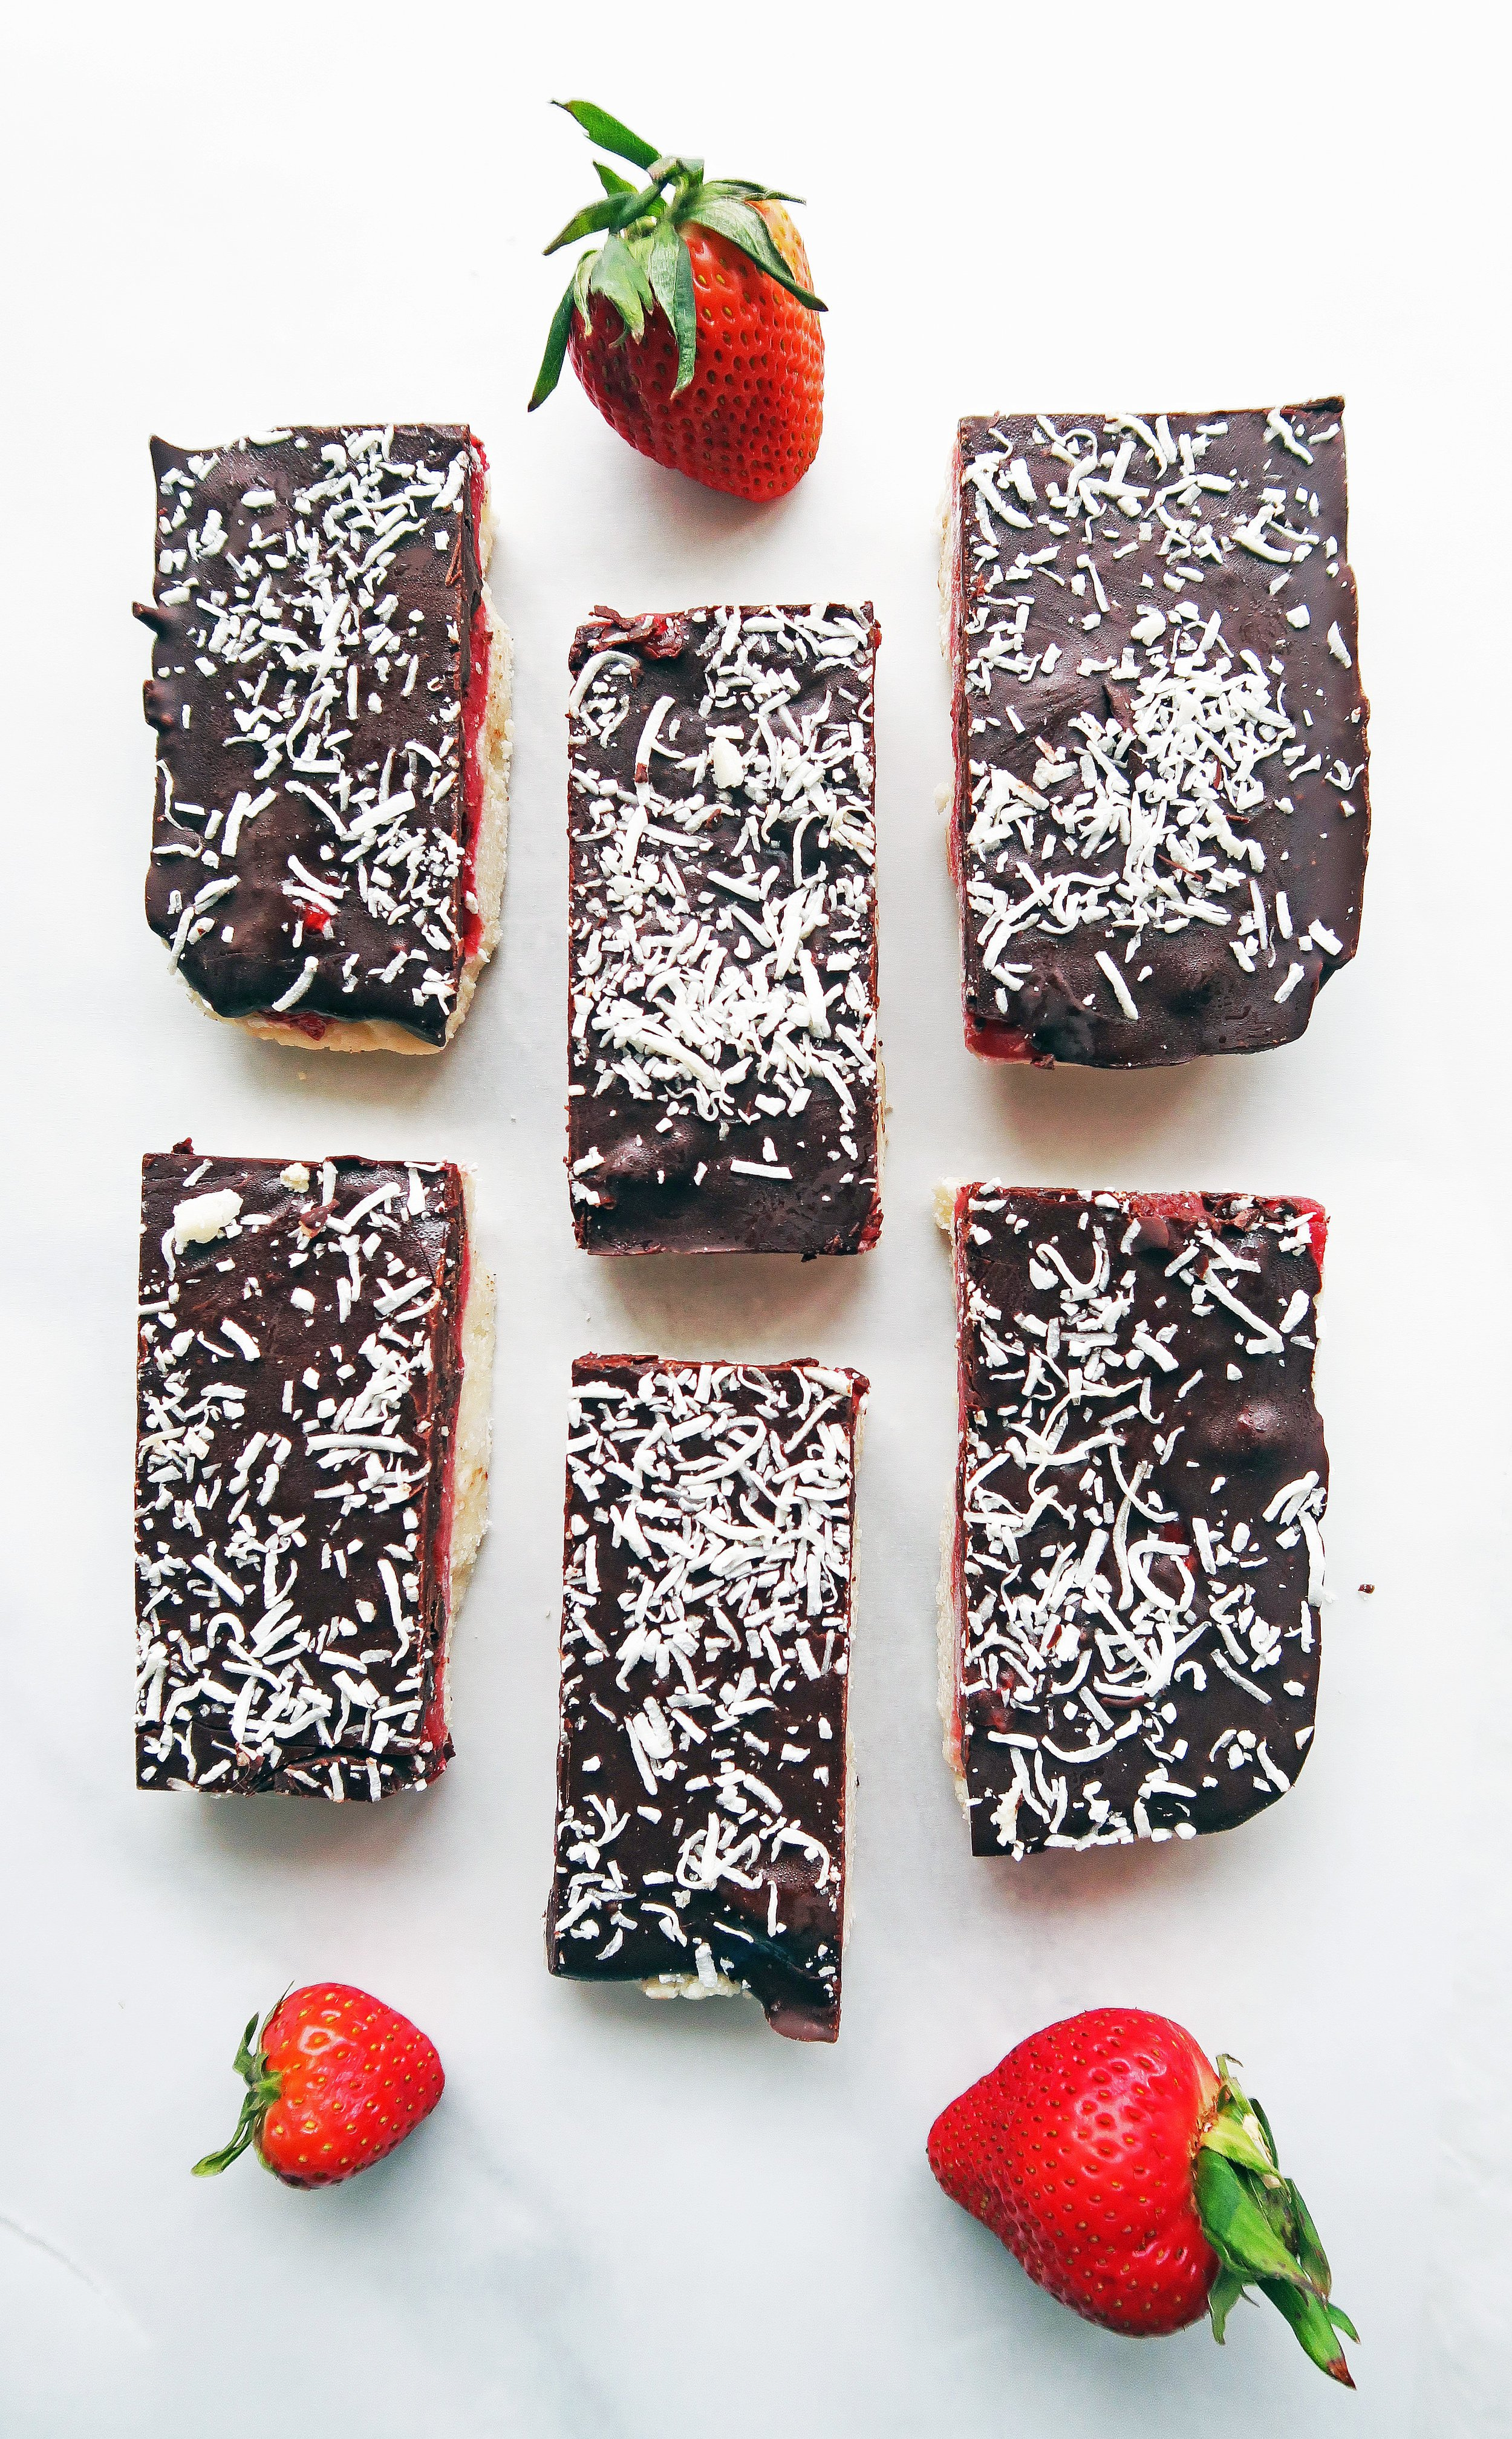 No-Bake, vegan, and gluten-free Chocolate Strawberry Coconut Bars on parchment paper with strawberries around them.